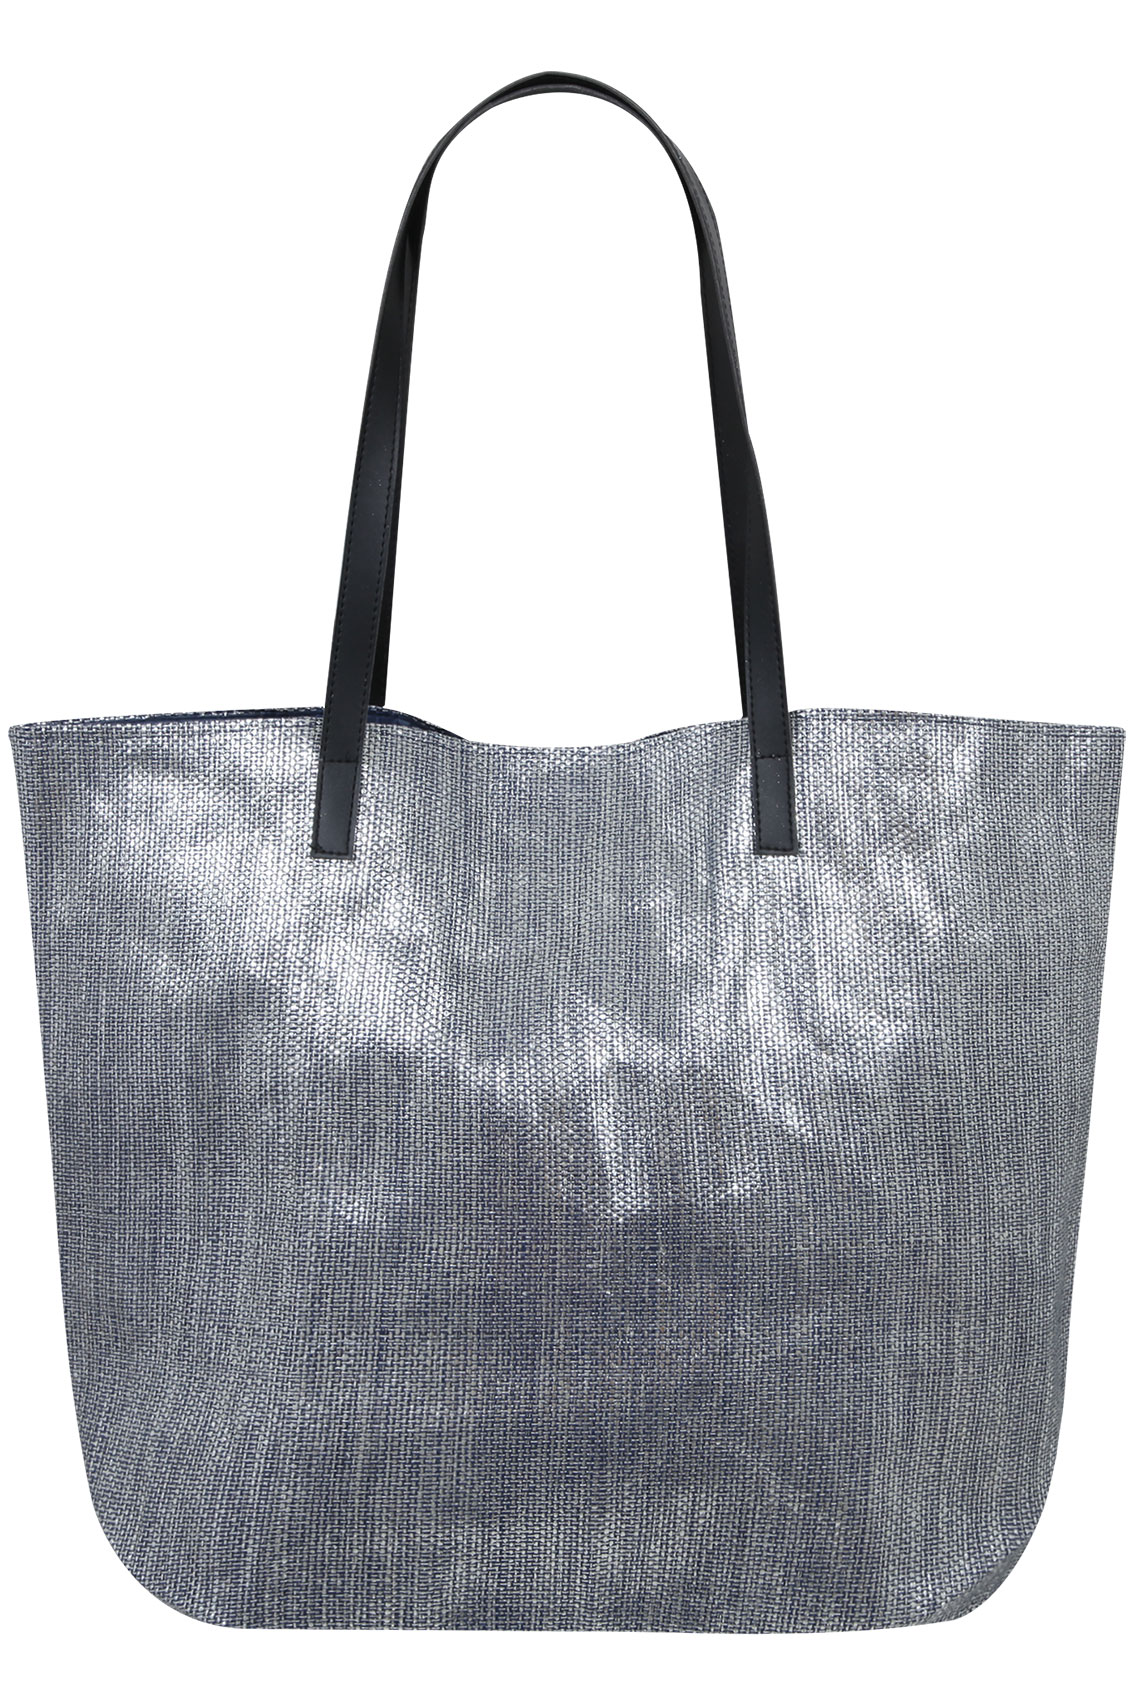 Silver Metallic Blue Straw Beach Bag With Pu Straps